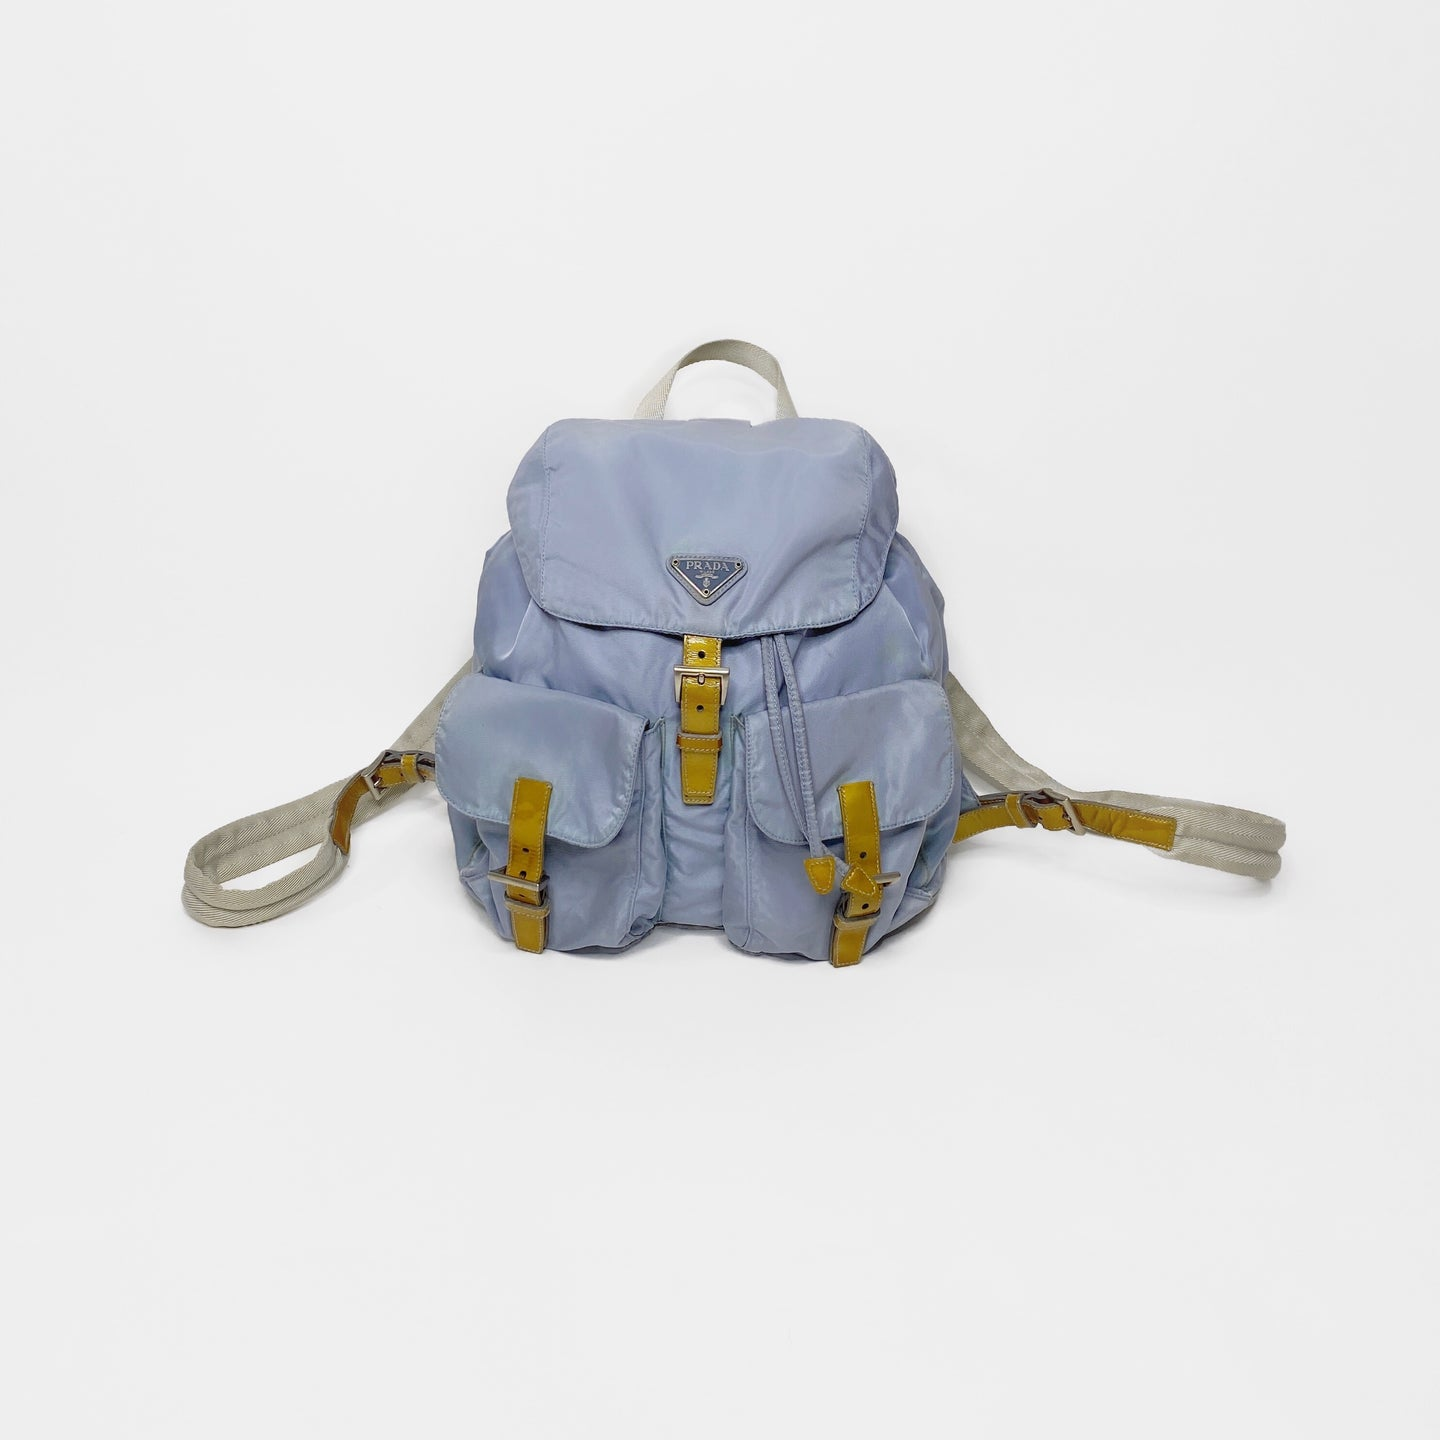 PRADA NYLON BACKPACK BAG-BASEMENT SIX